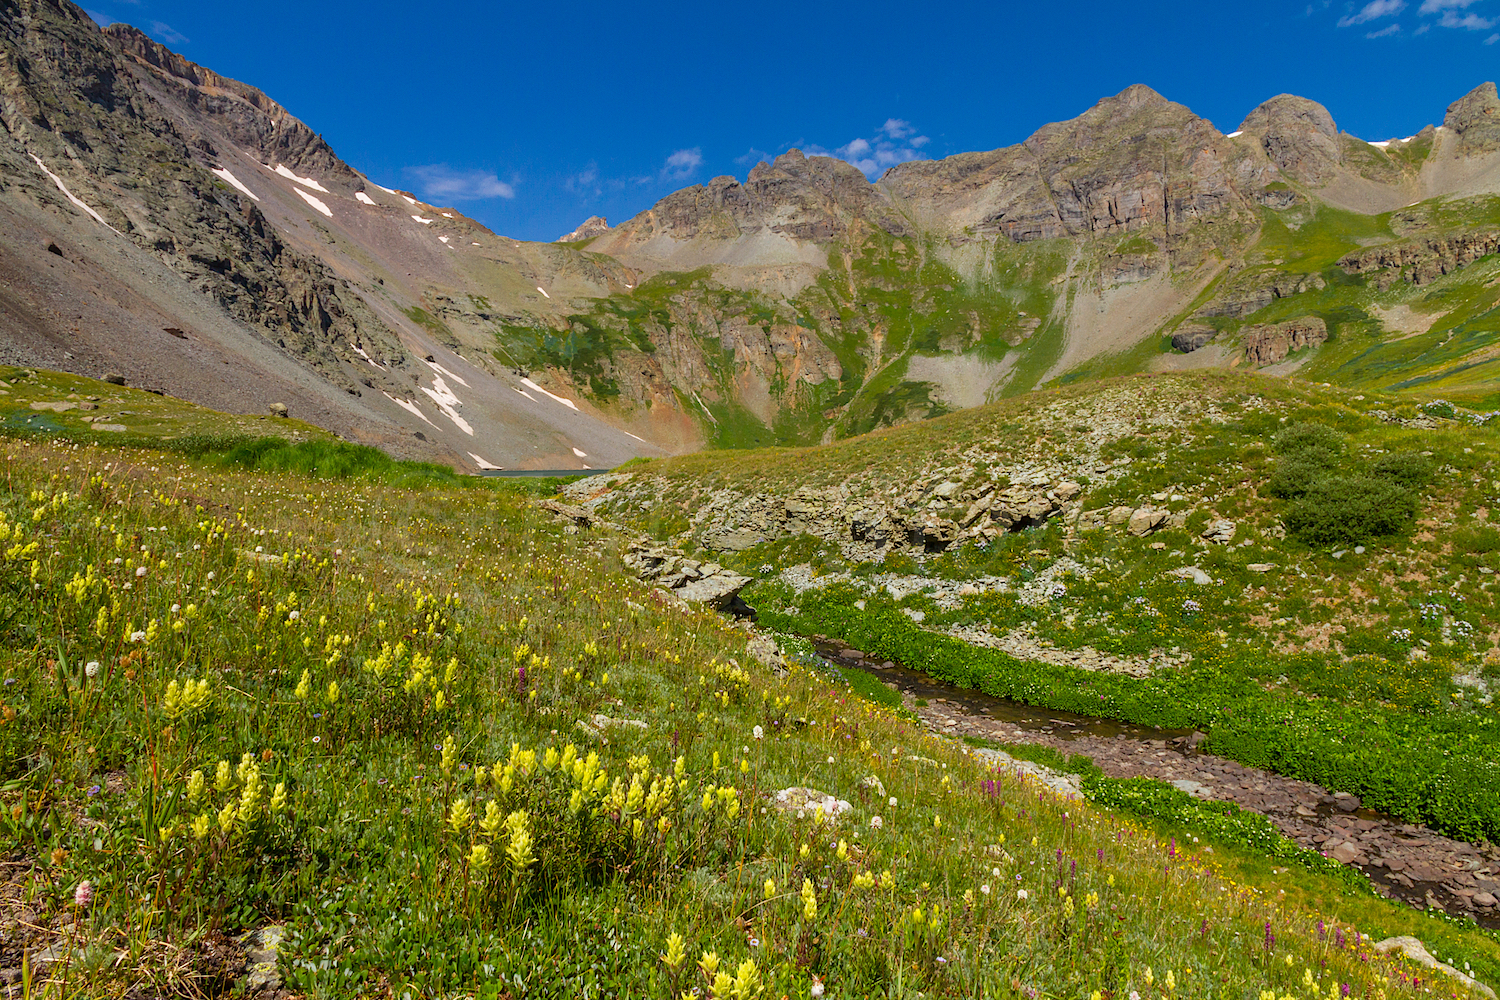 Clear Lake Wildflowers, Image # 3891